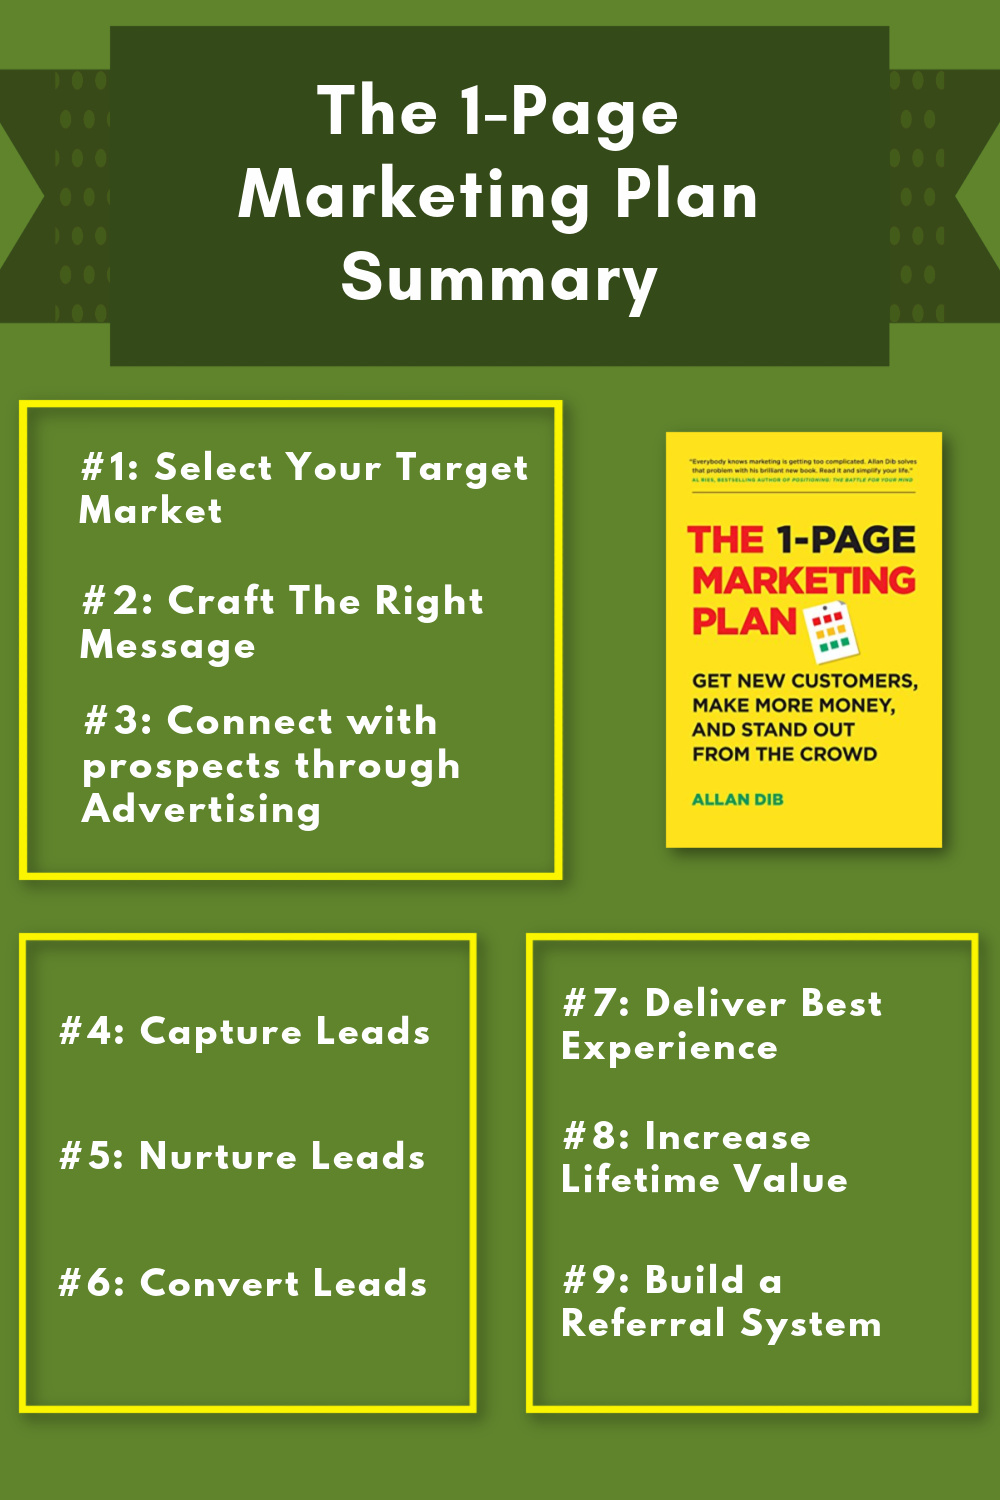 The 1-Page Marketing Plan Summary Infographic